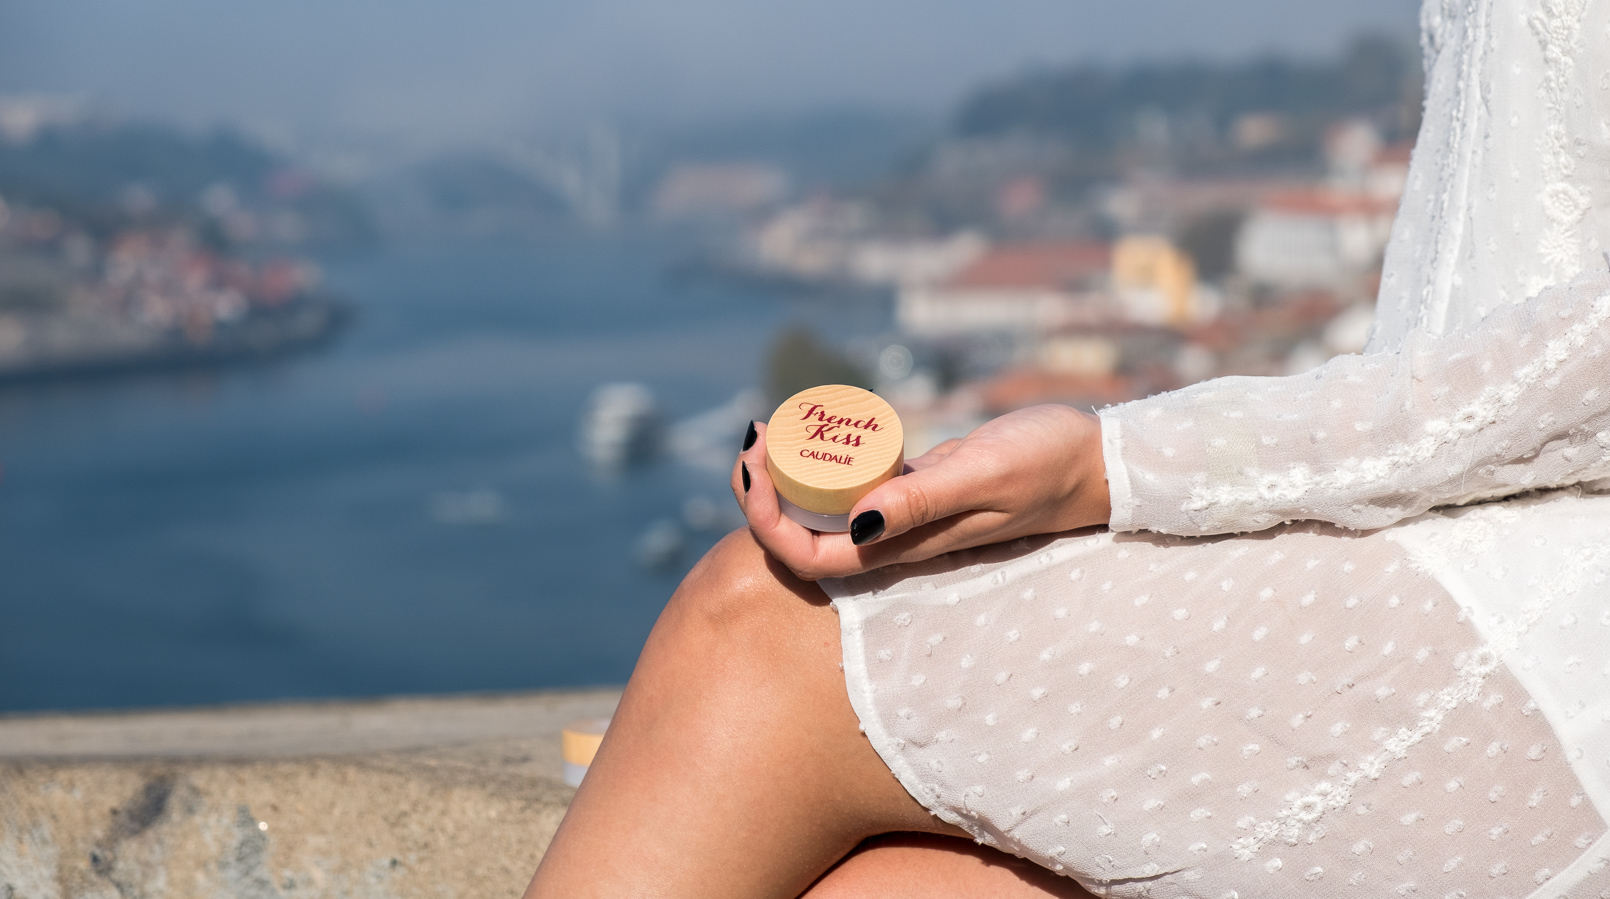 Le Fashionaire Have you tried the new Caudalie French Kiss Lip balm? white zara embroidered dress lip balm french kiss caudalie oporto landscape 5370F EN